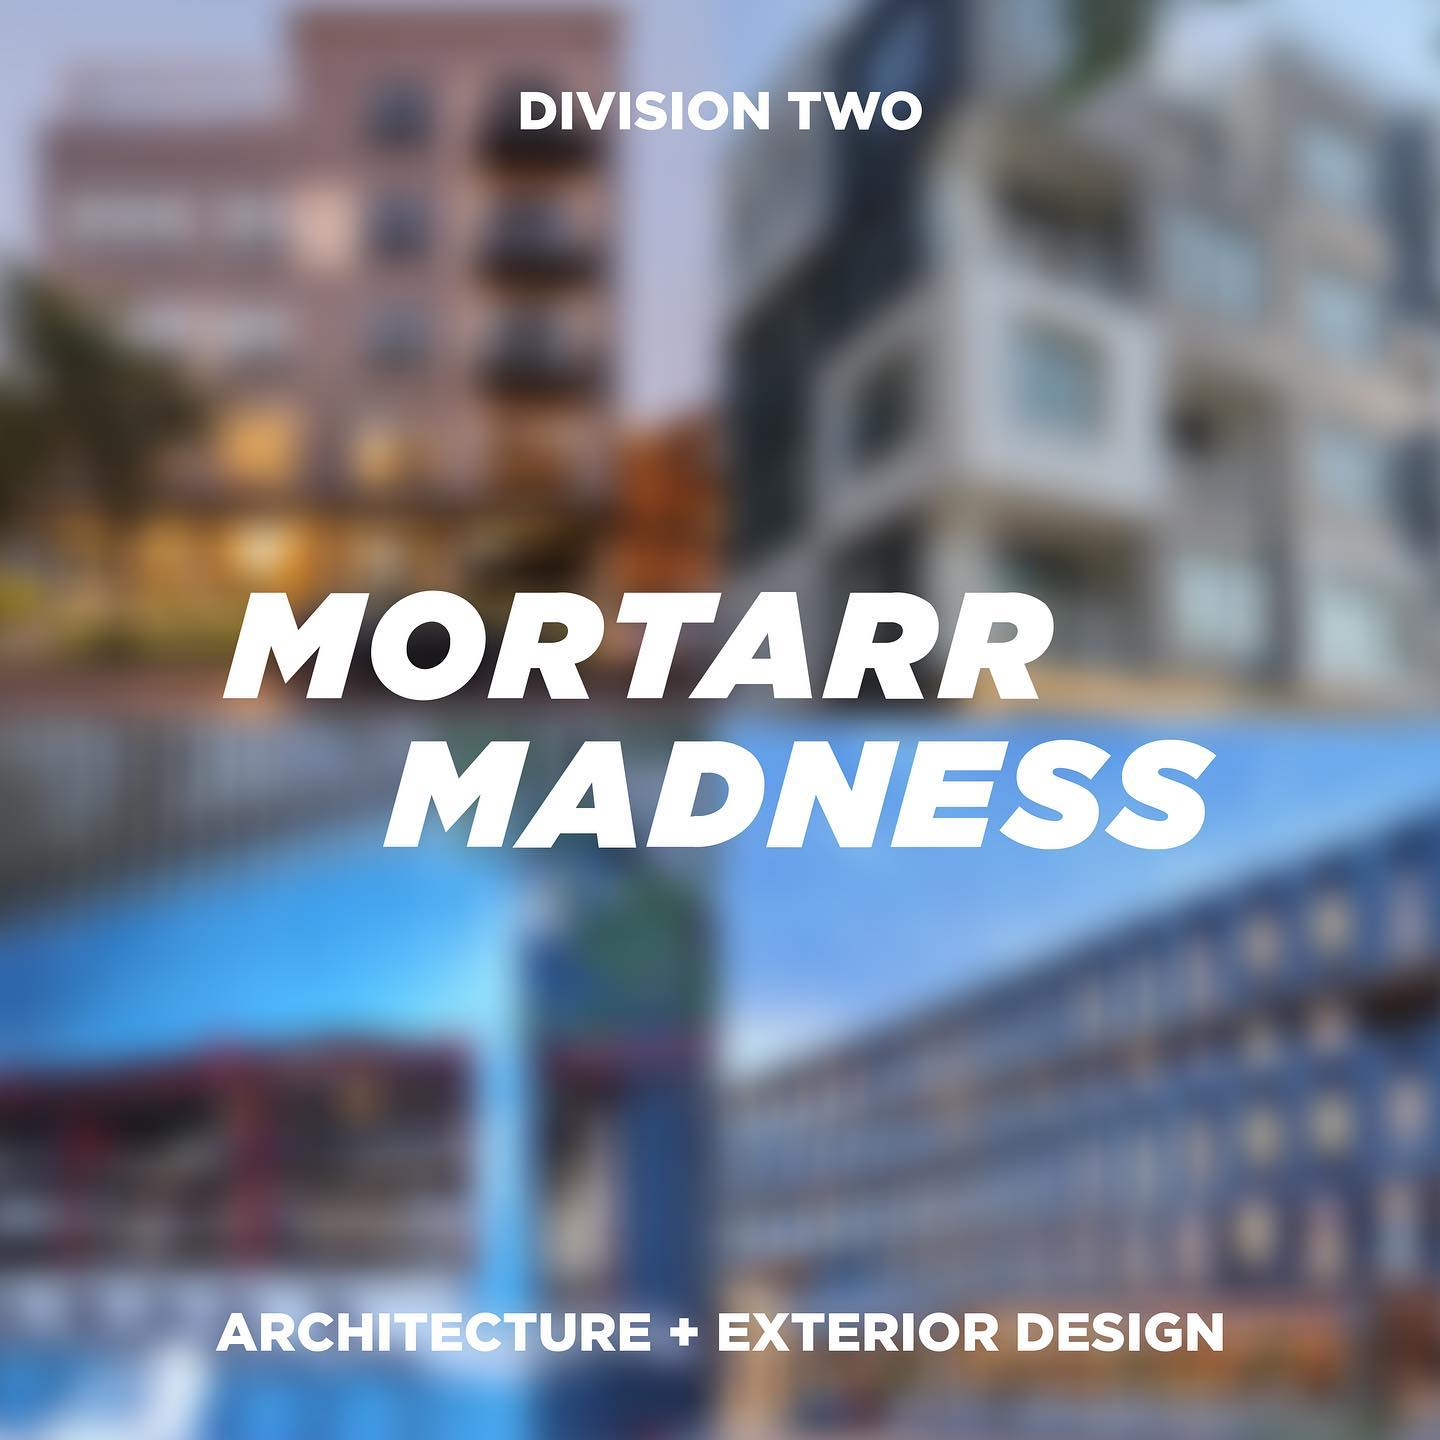 Let the Mortarr Madness begin! Link in our story to cast your vote for The Archer to win for best Architecture + Exterior Design! And don't forget to share so others can vote too!•••#djrarchitecture #mortarrmadness #sweetsixteen